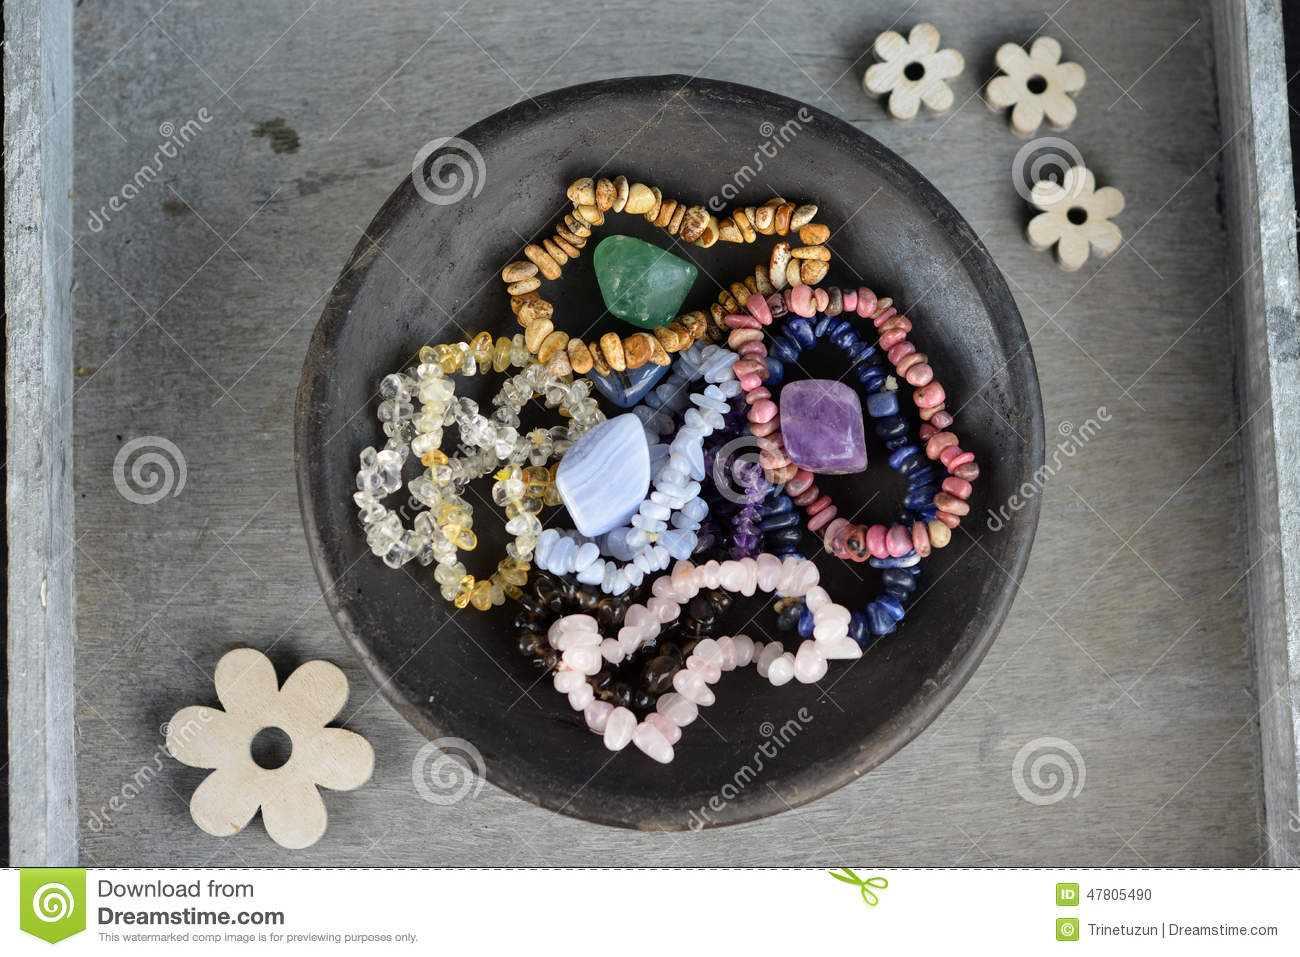 Bracelets of crystals and gemstones for a healing effect